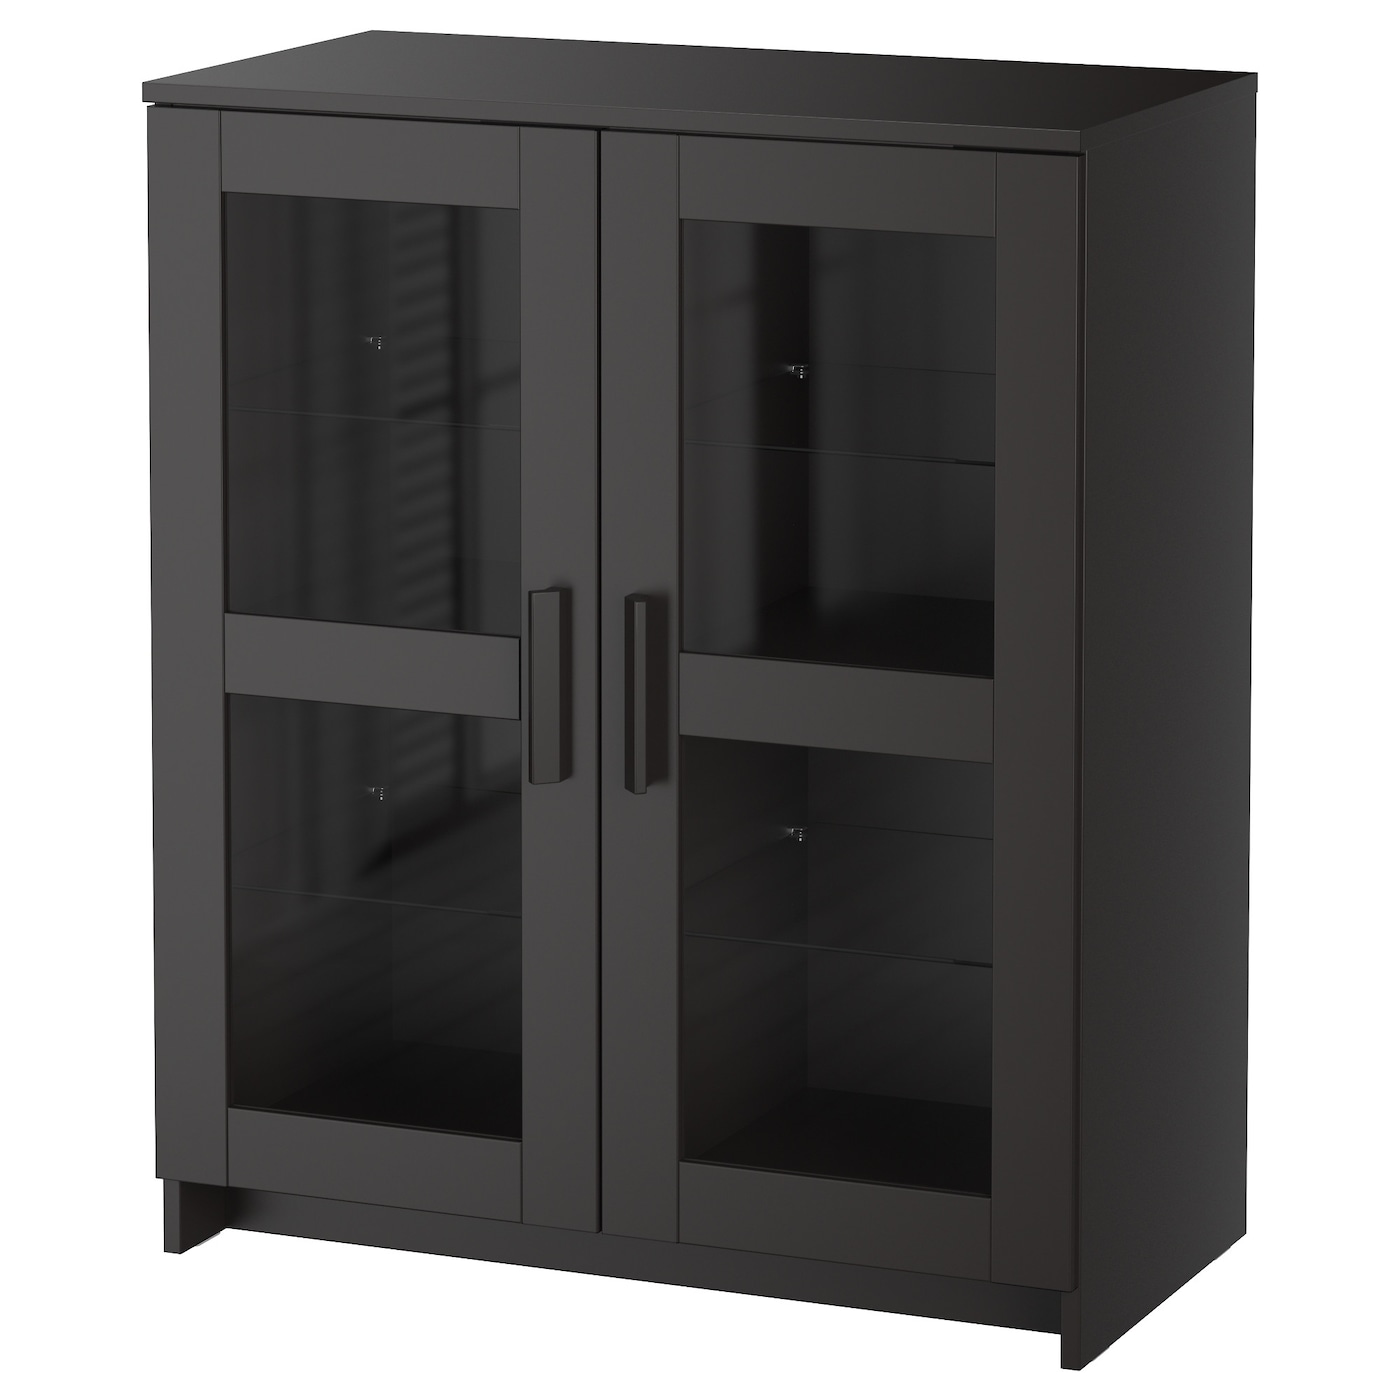 brimnes armoire avec portes verre noir 78x95 cm ikea. Black Bedroom Furniture Sets. Home Design Ideas